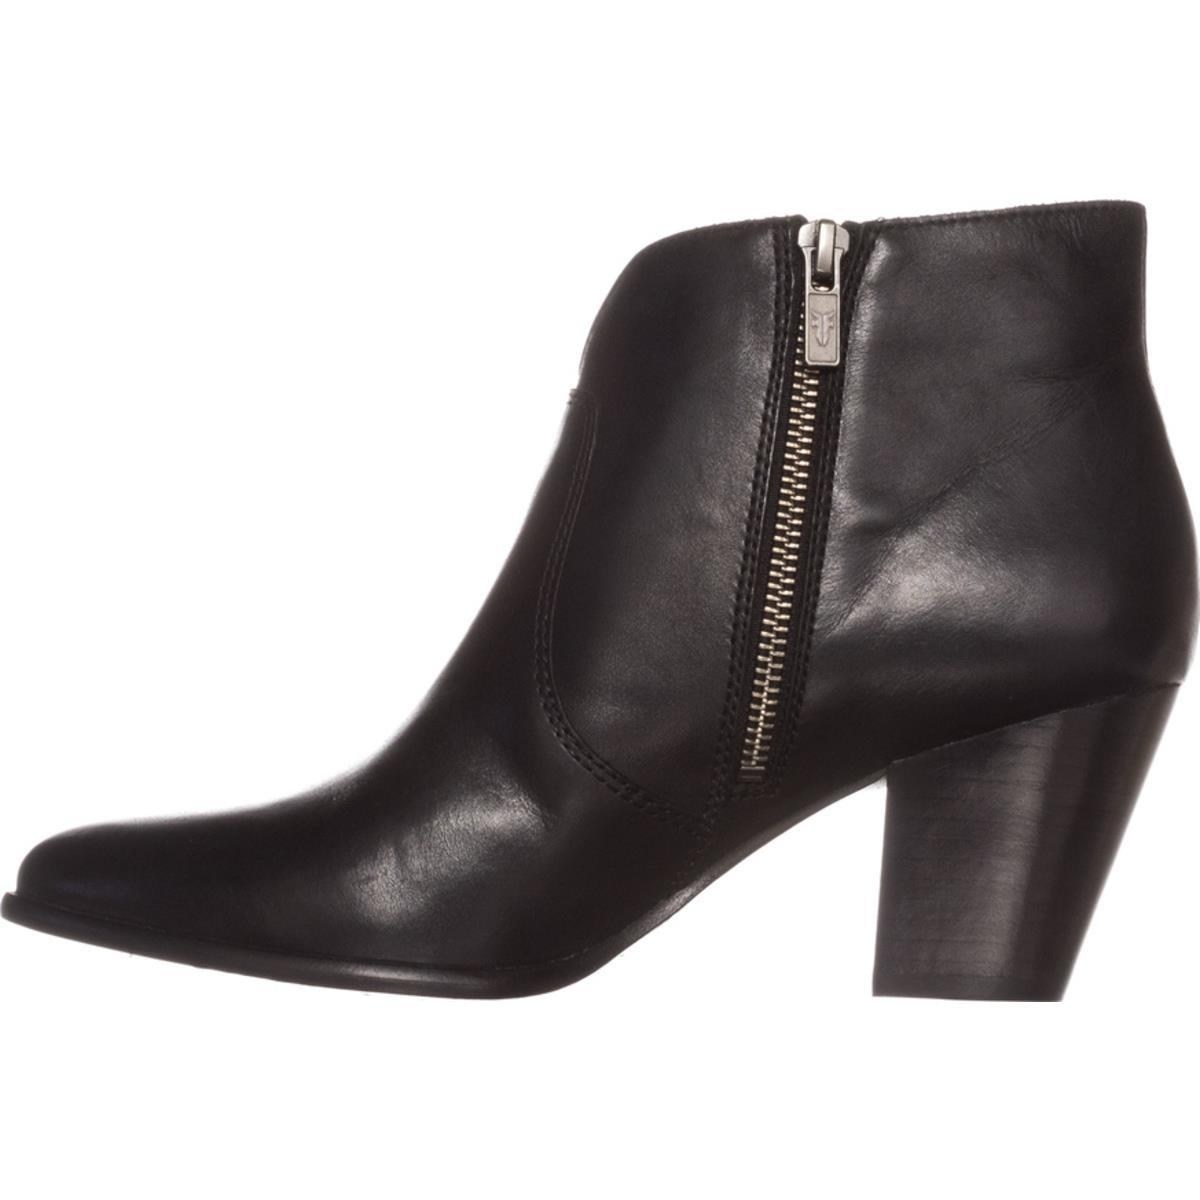 Frye-Womens-Jennifer-Bootie-Leather-Pointed-Toe-Ankle-Fashion-Black-Size-7-0-q